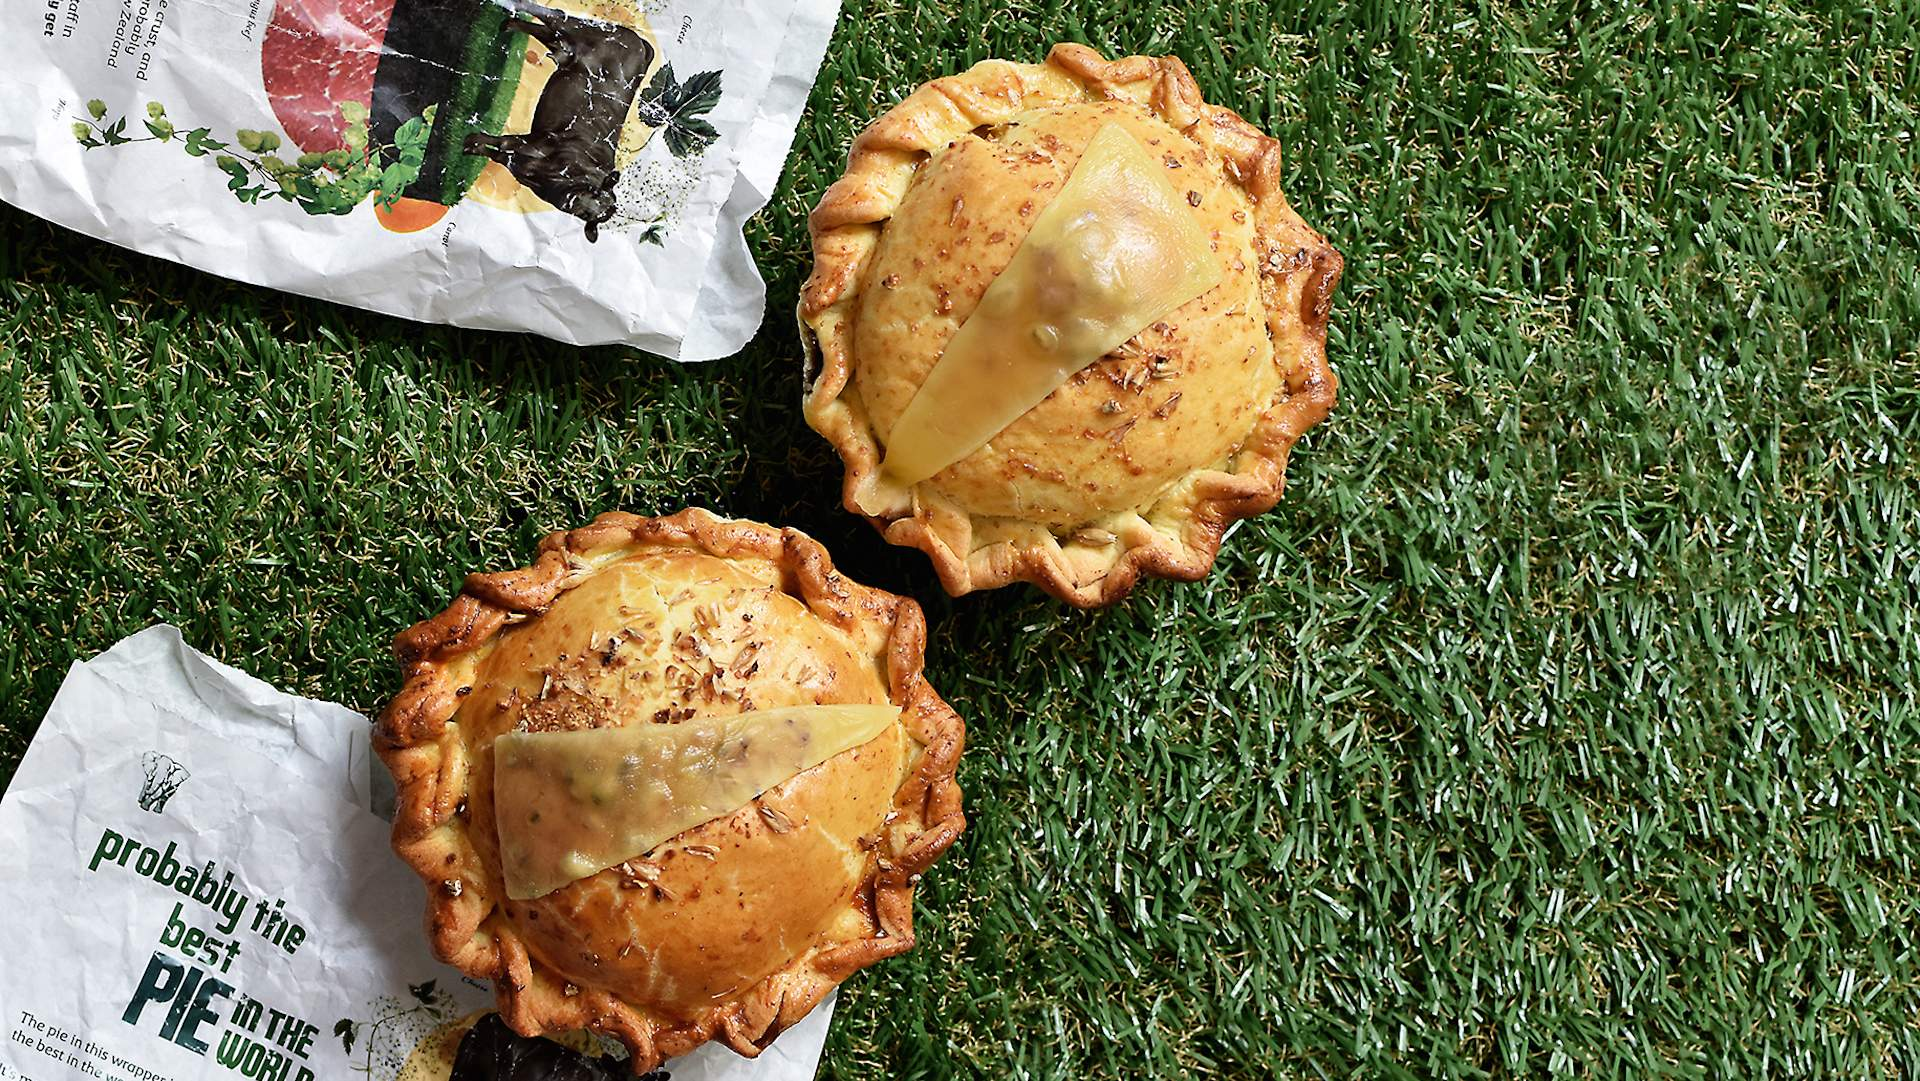 Carlsberg Pop-Up Pie Window